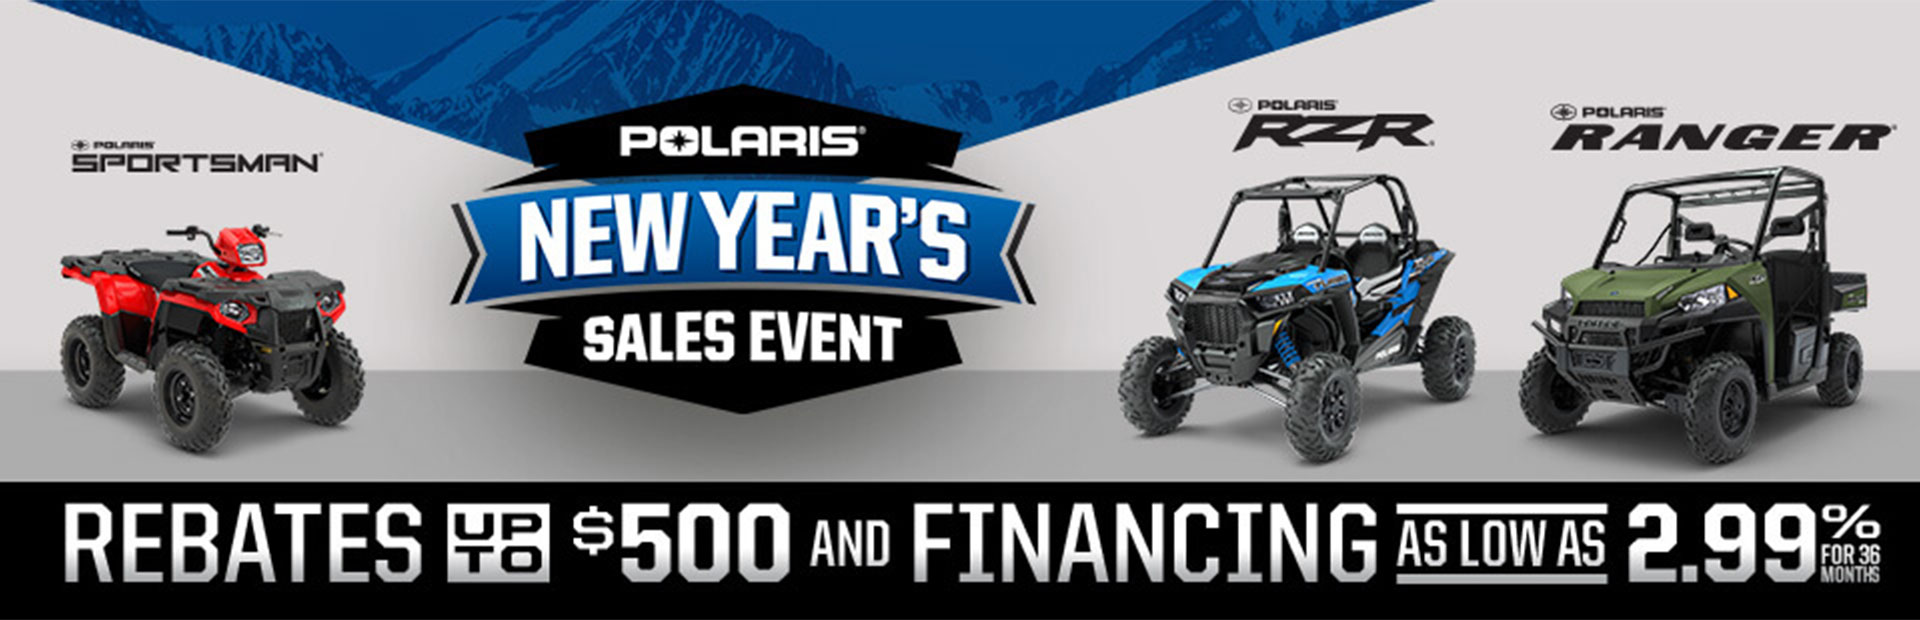 New Year's Sales Event (Off-Road)